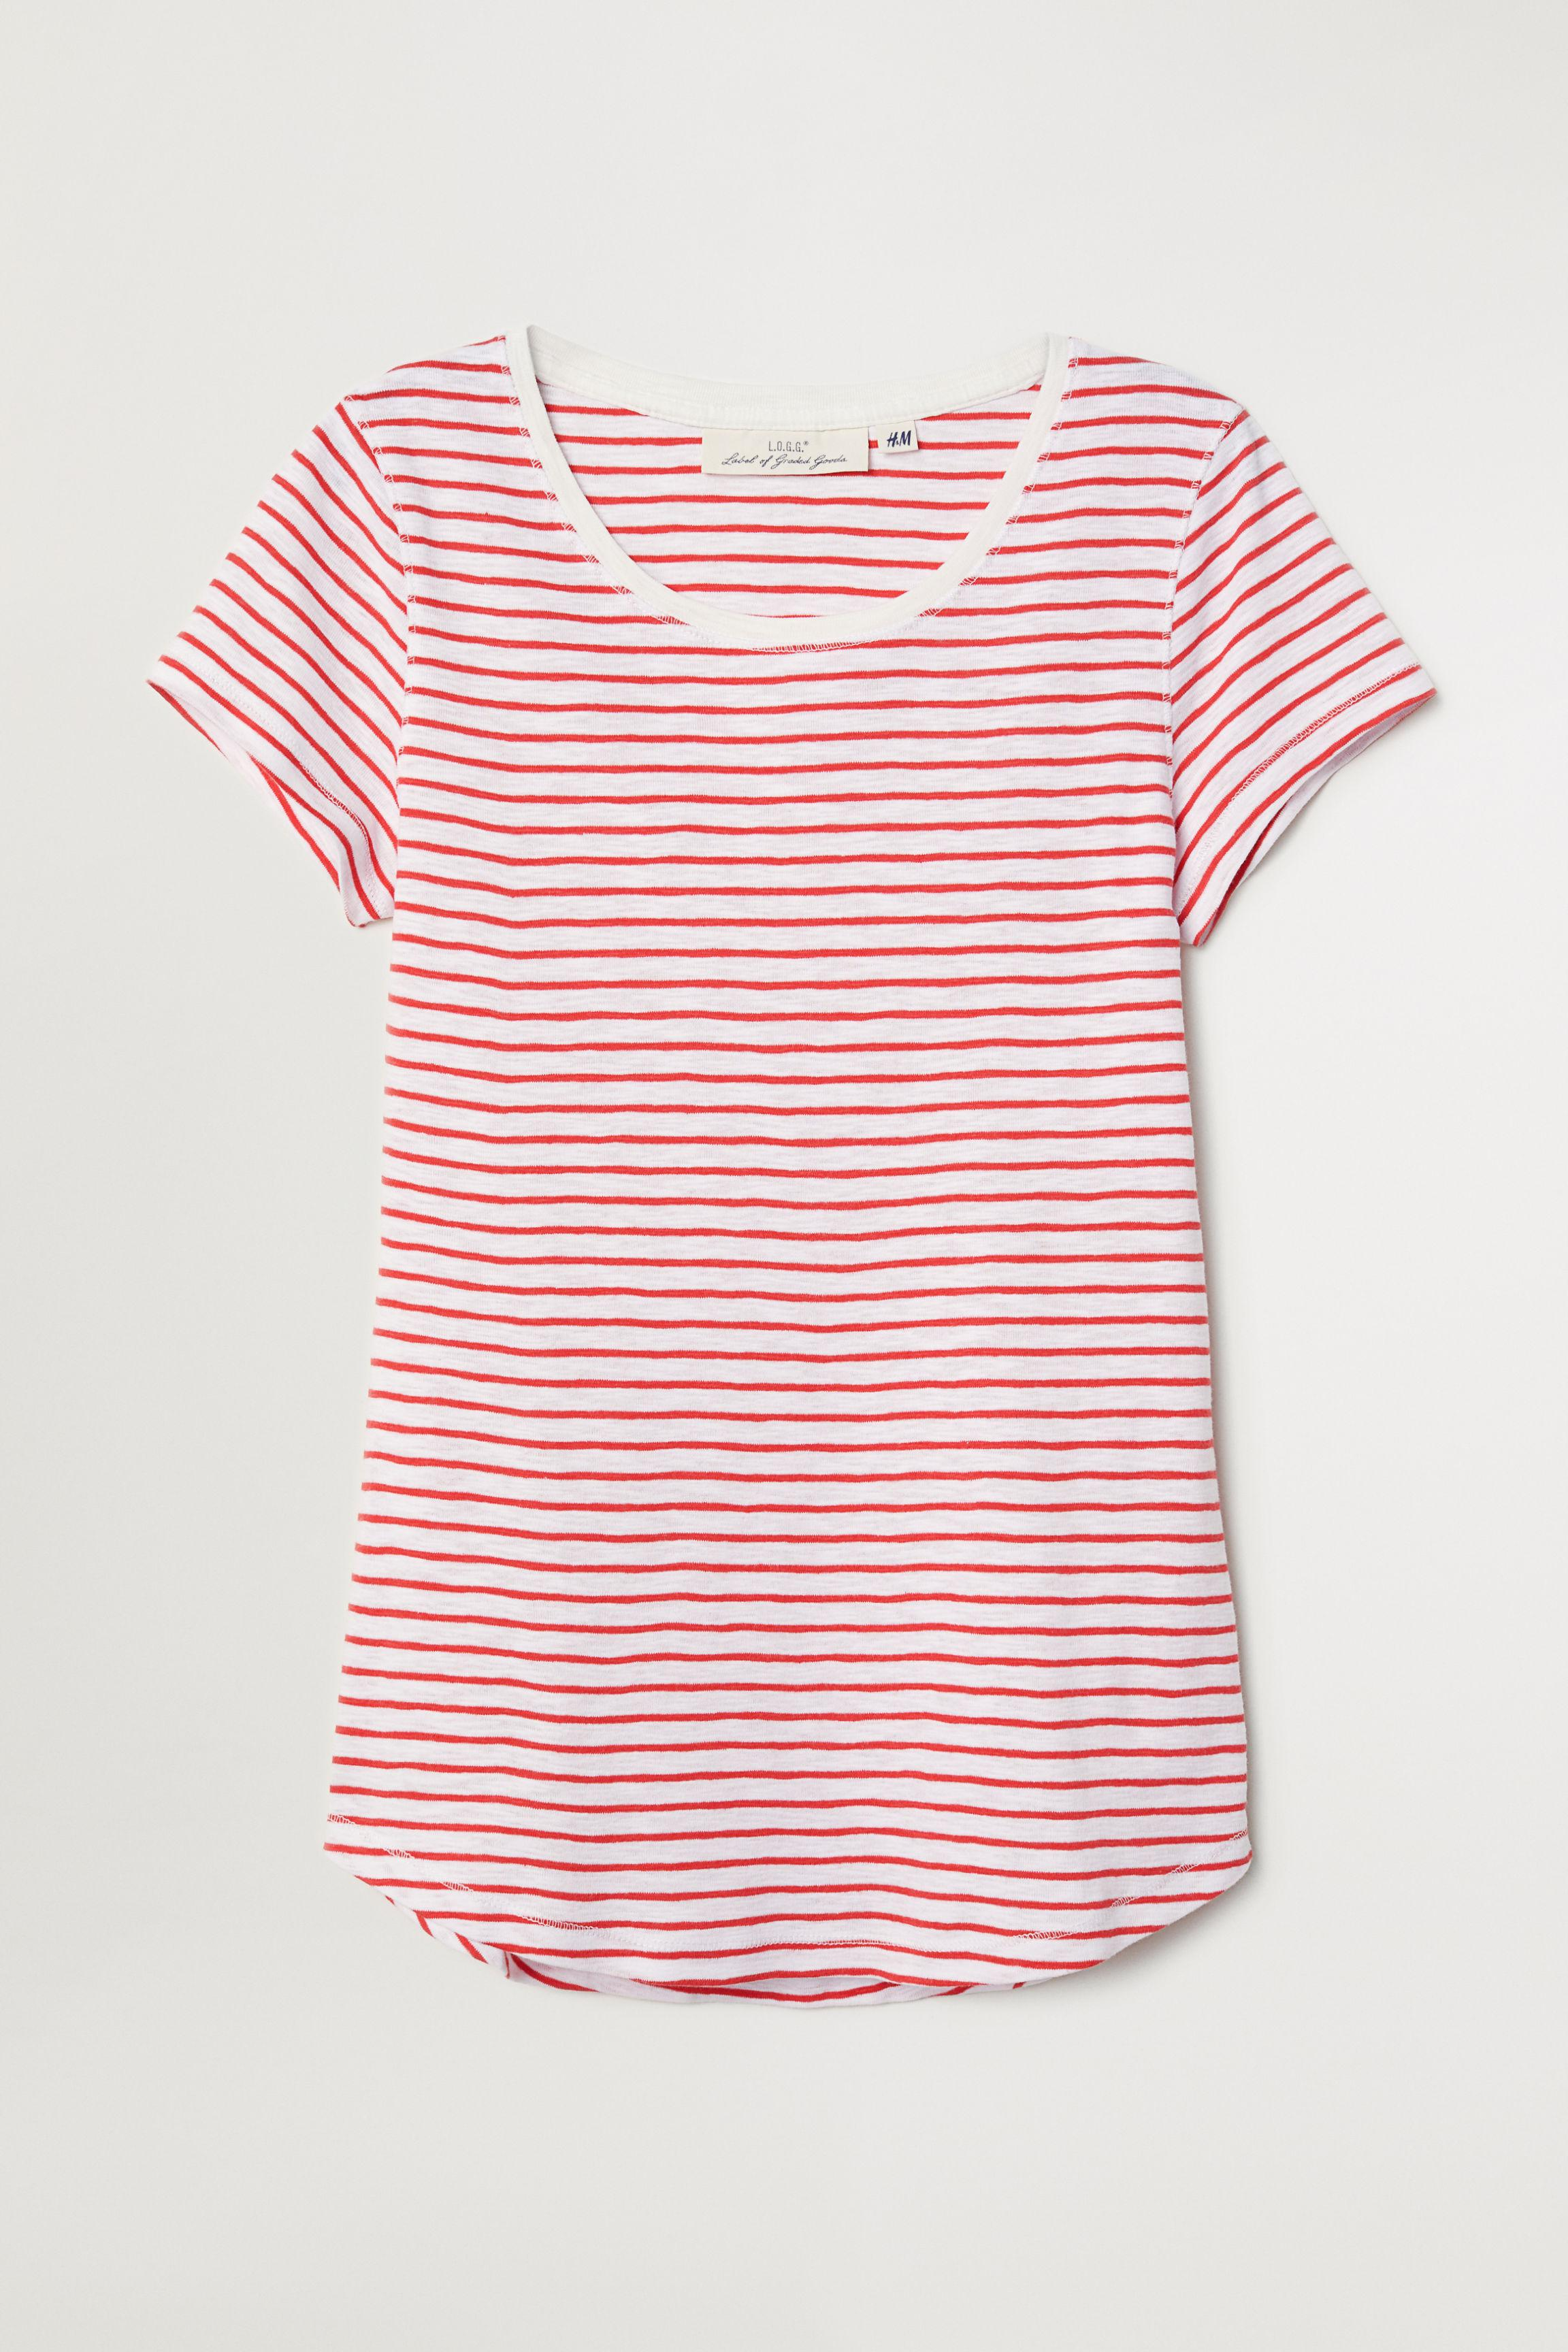 918d06aab4 Lyst - H&M Striped Jersey Top in Red